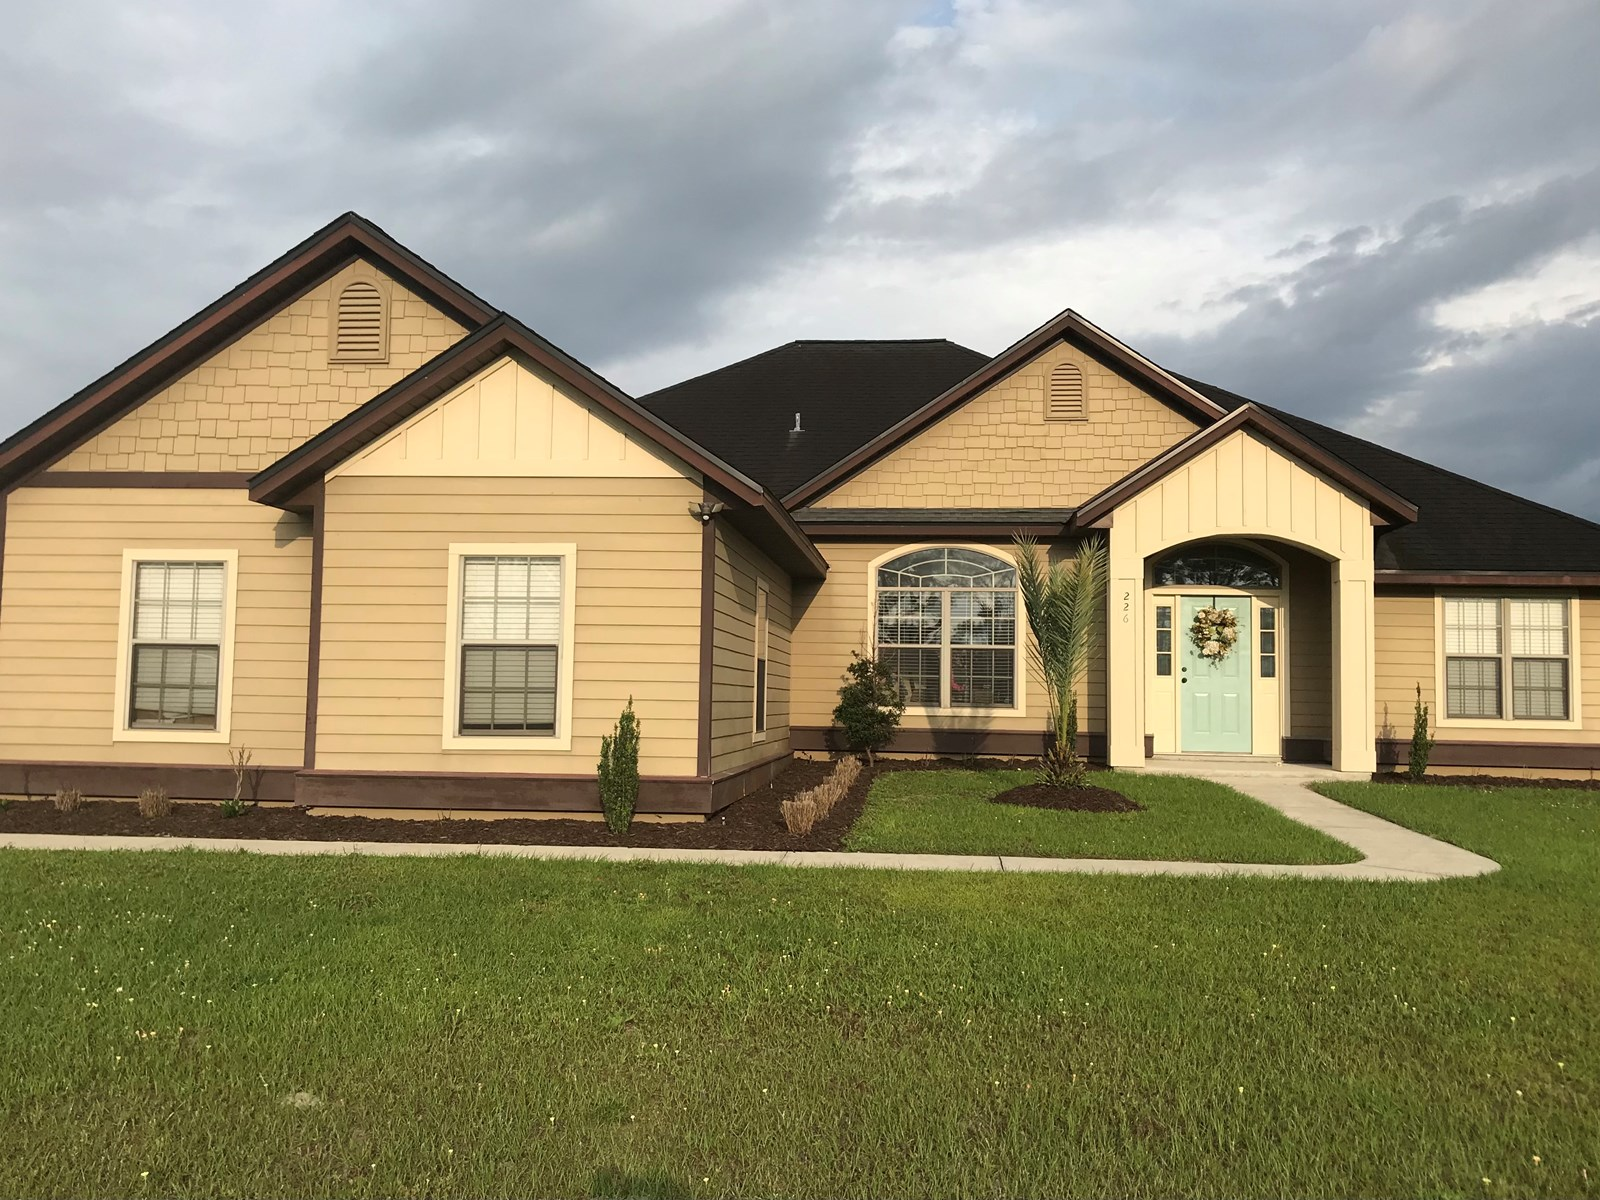 SPACIOUS HOME ON 1/2 ACRE IN NORTH CENTRAL FLORIDA